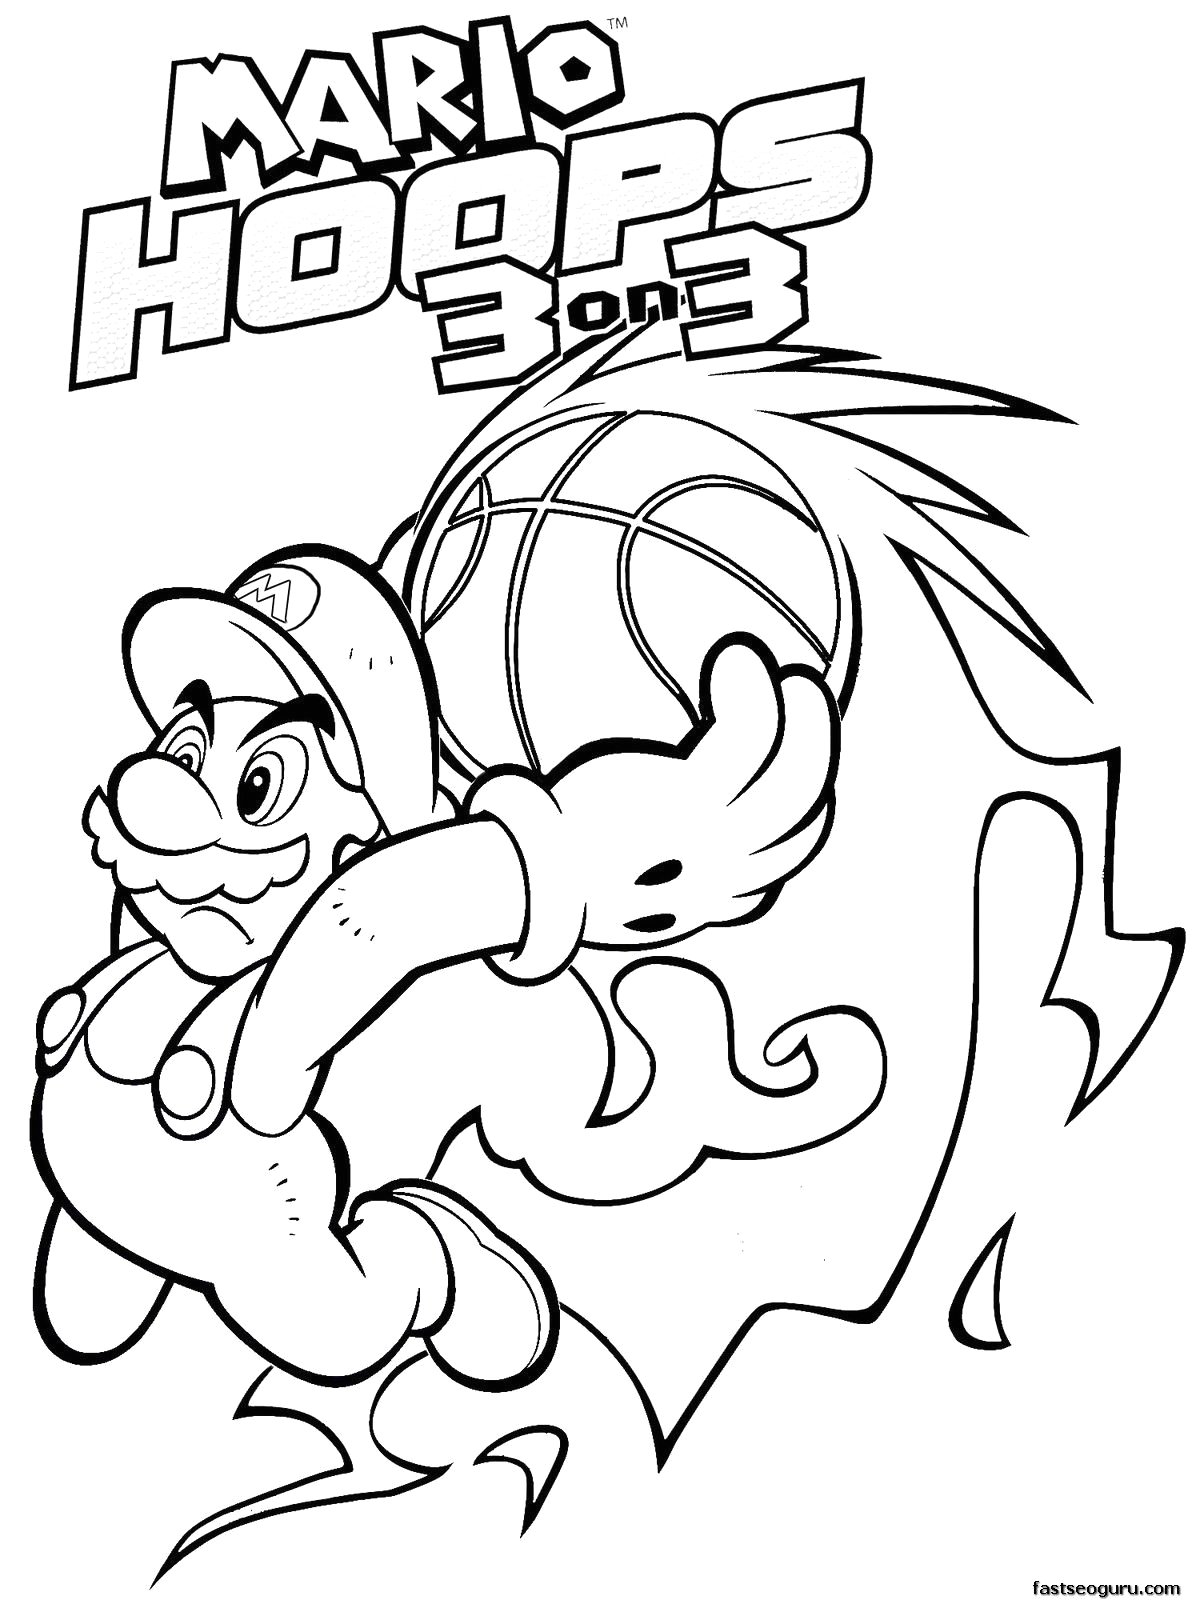 Super Mario 3d World Coloring Pages to Print Coloring Pages Mario 3d World Coloring Home